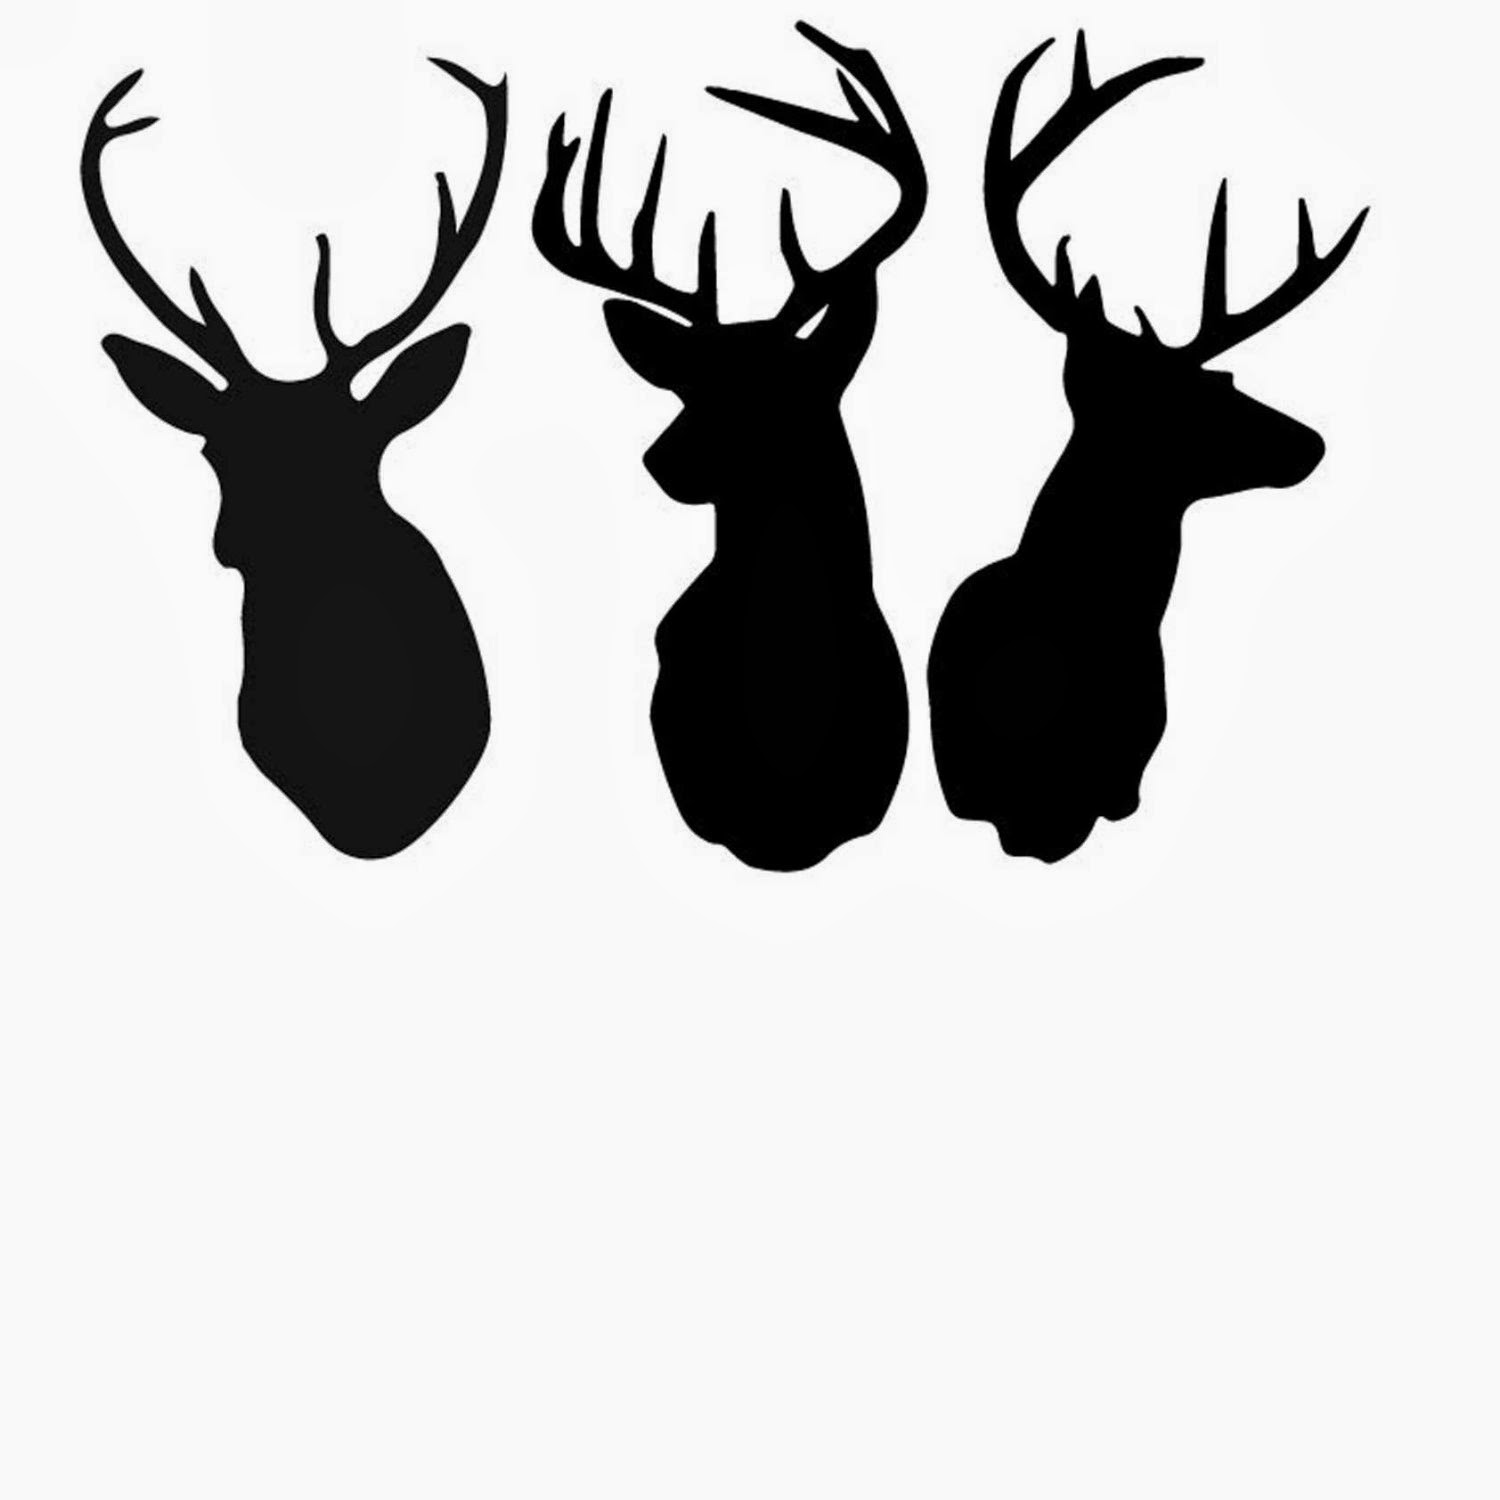 This is a graphic of Vibrant Printable Deer Head Silhouette